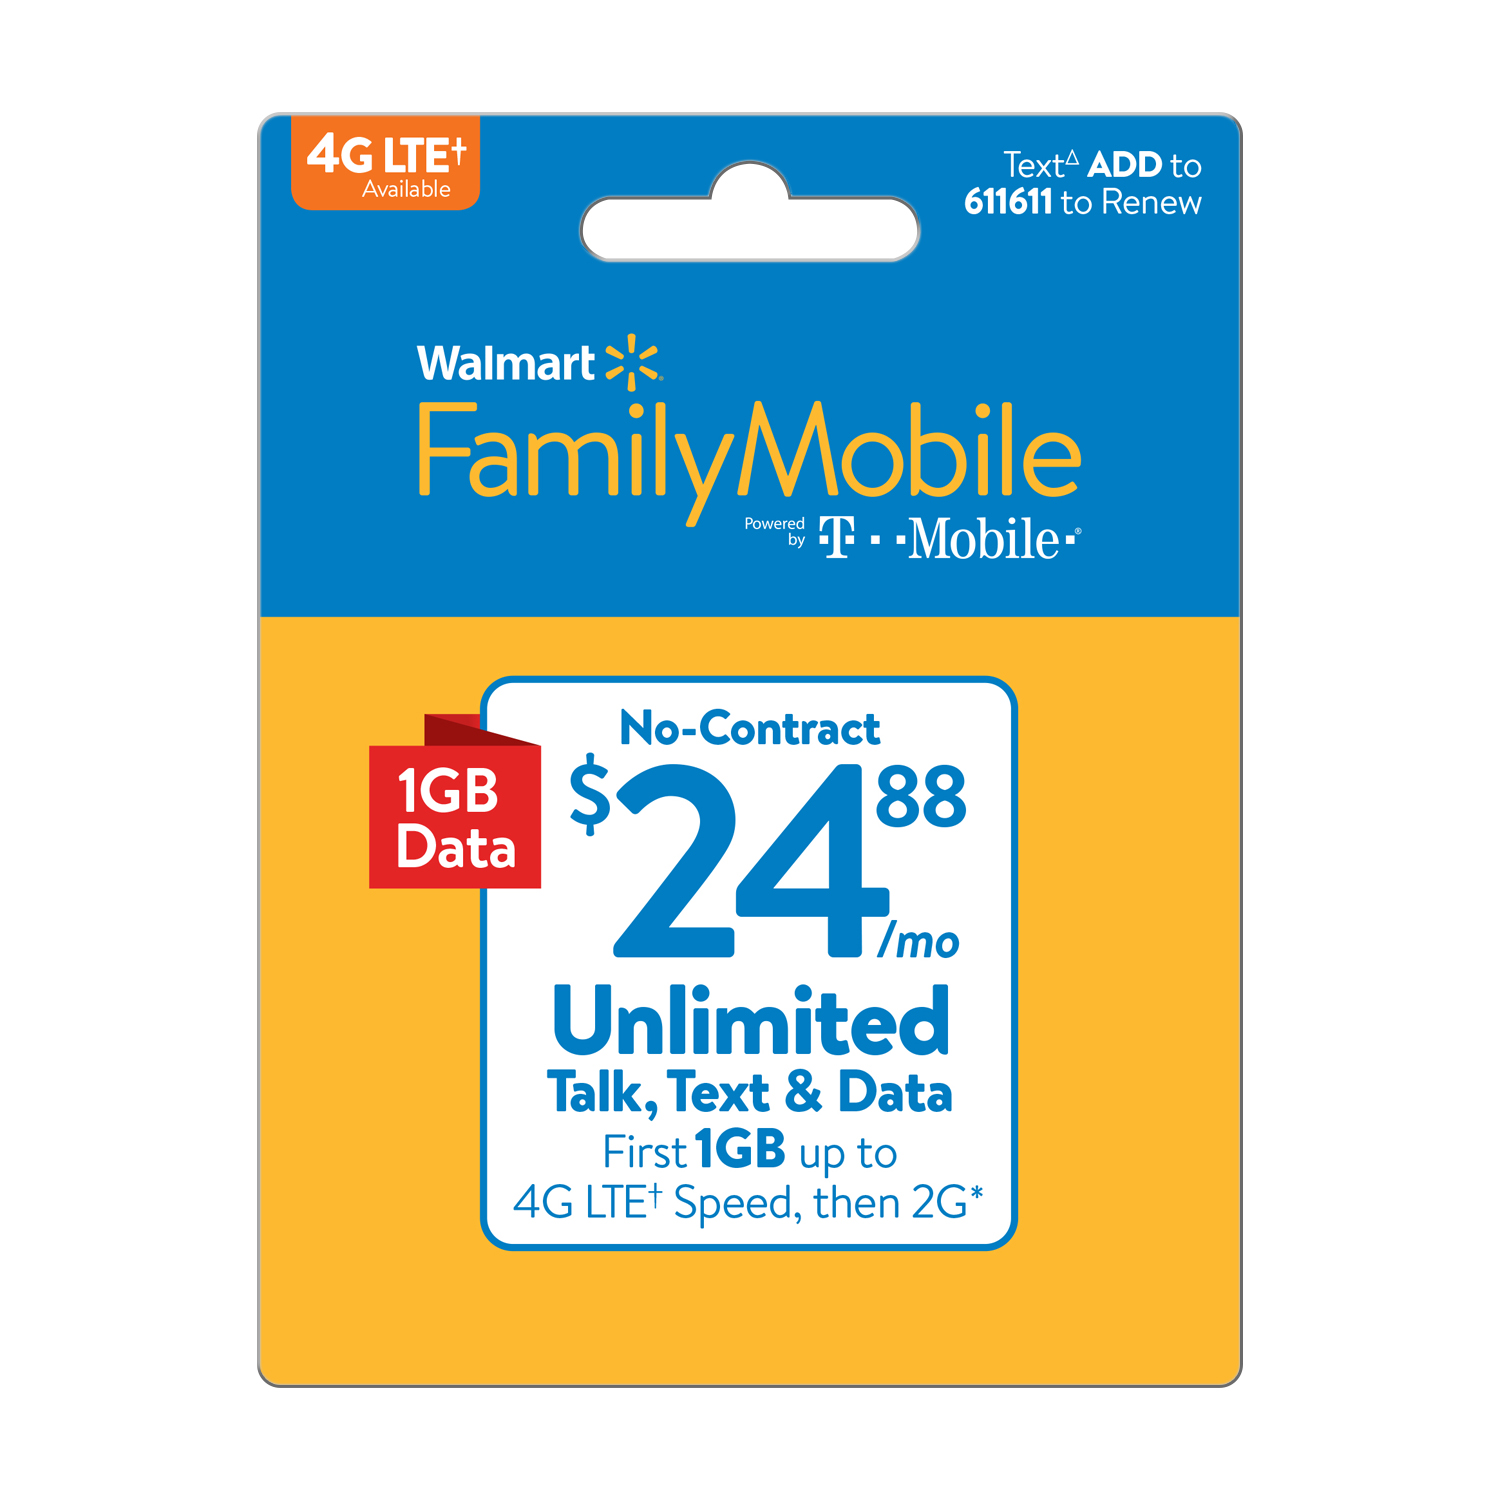 Walmart Family Mobile $24.88 Unlimited Monthly Plan (with up to 1GB at high speed, then 2G*) (Email Delivery)